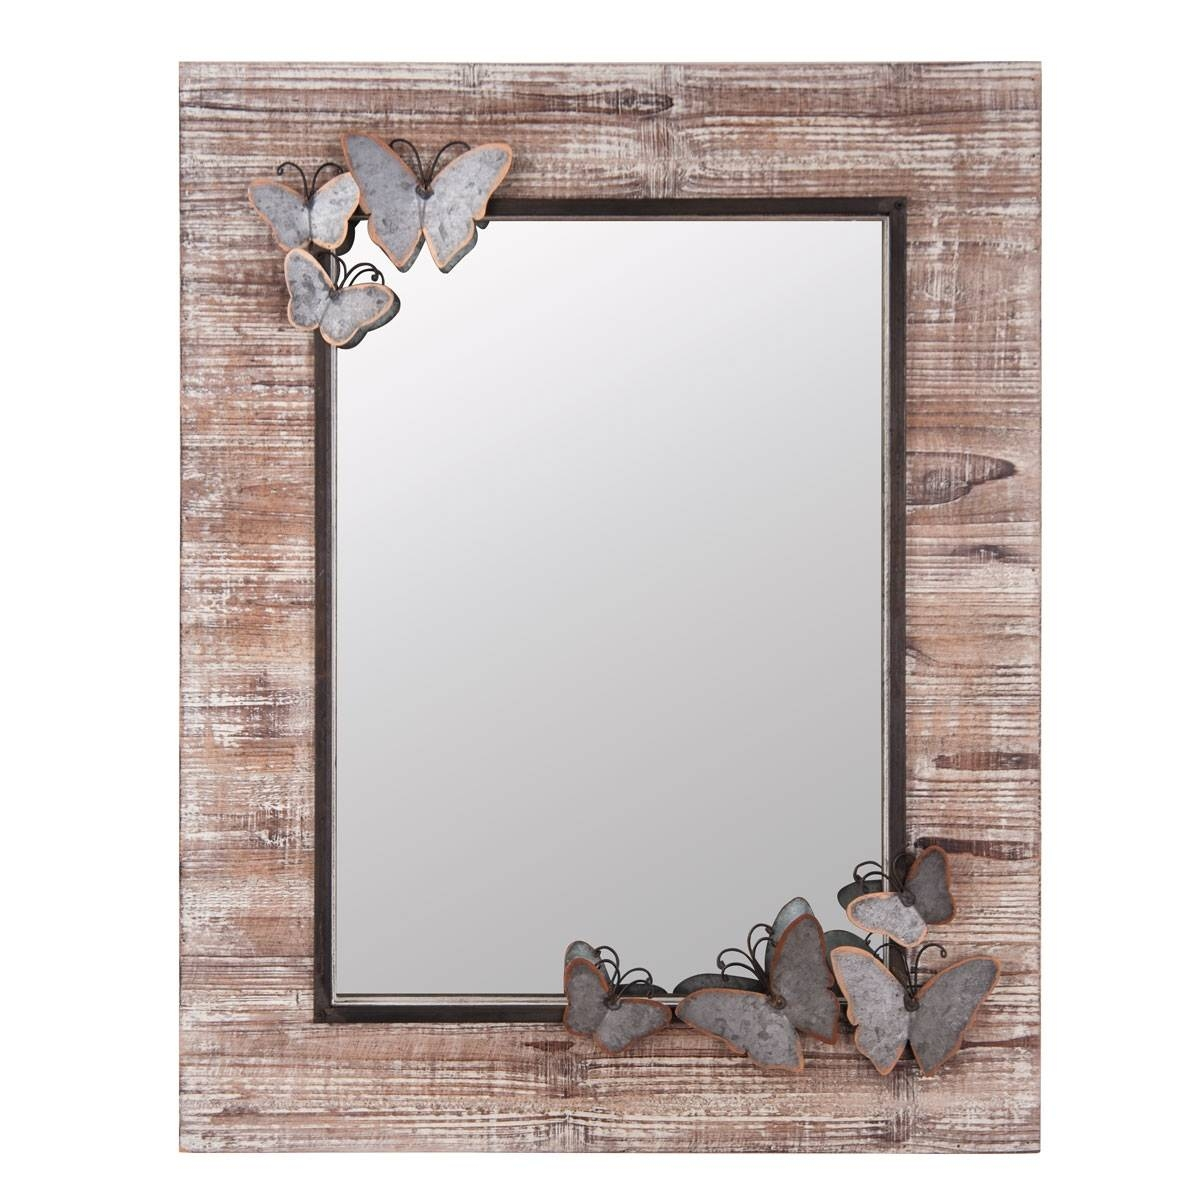 Butterfly Wood Frame Wall Mirror | Plum & Post for Butterfly Wall Mirrors (Image 3 of 25)